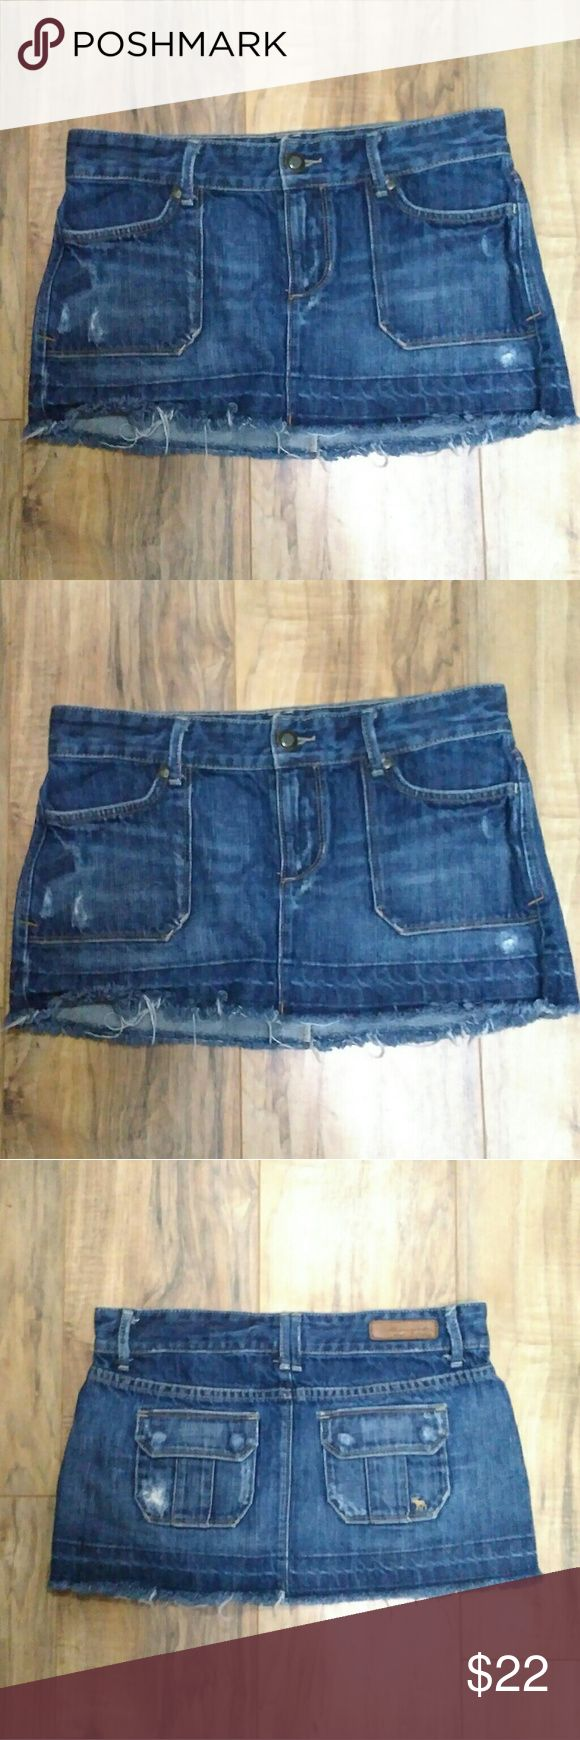 Abercrombie and Fitch Mini Skirt Abercrombie and Fitch distressed blue jean skirt with stylish fades and Fringed ends. Has classic A&F buttons.  Measures 10 inches from top of jean to bottom of jean and approximately 29 inches around. Abercrombie & Fitch Skirts Mini